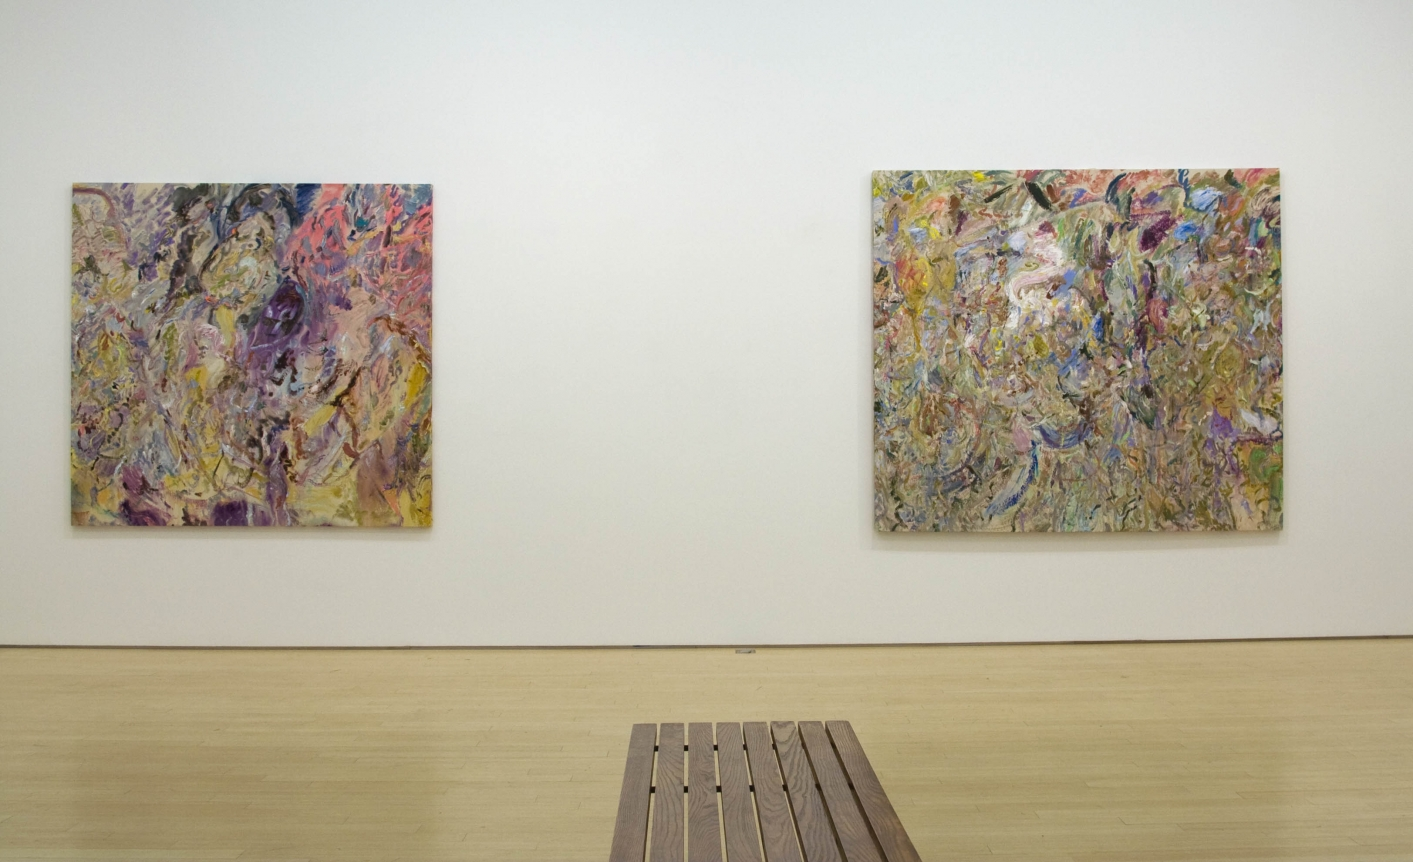 Larry Poons